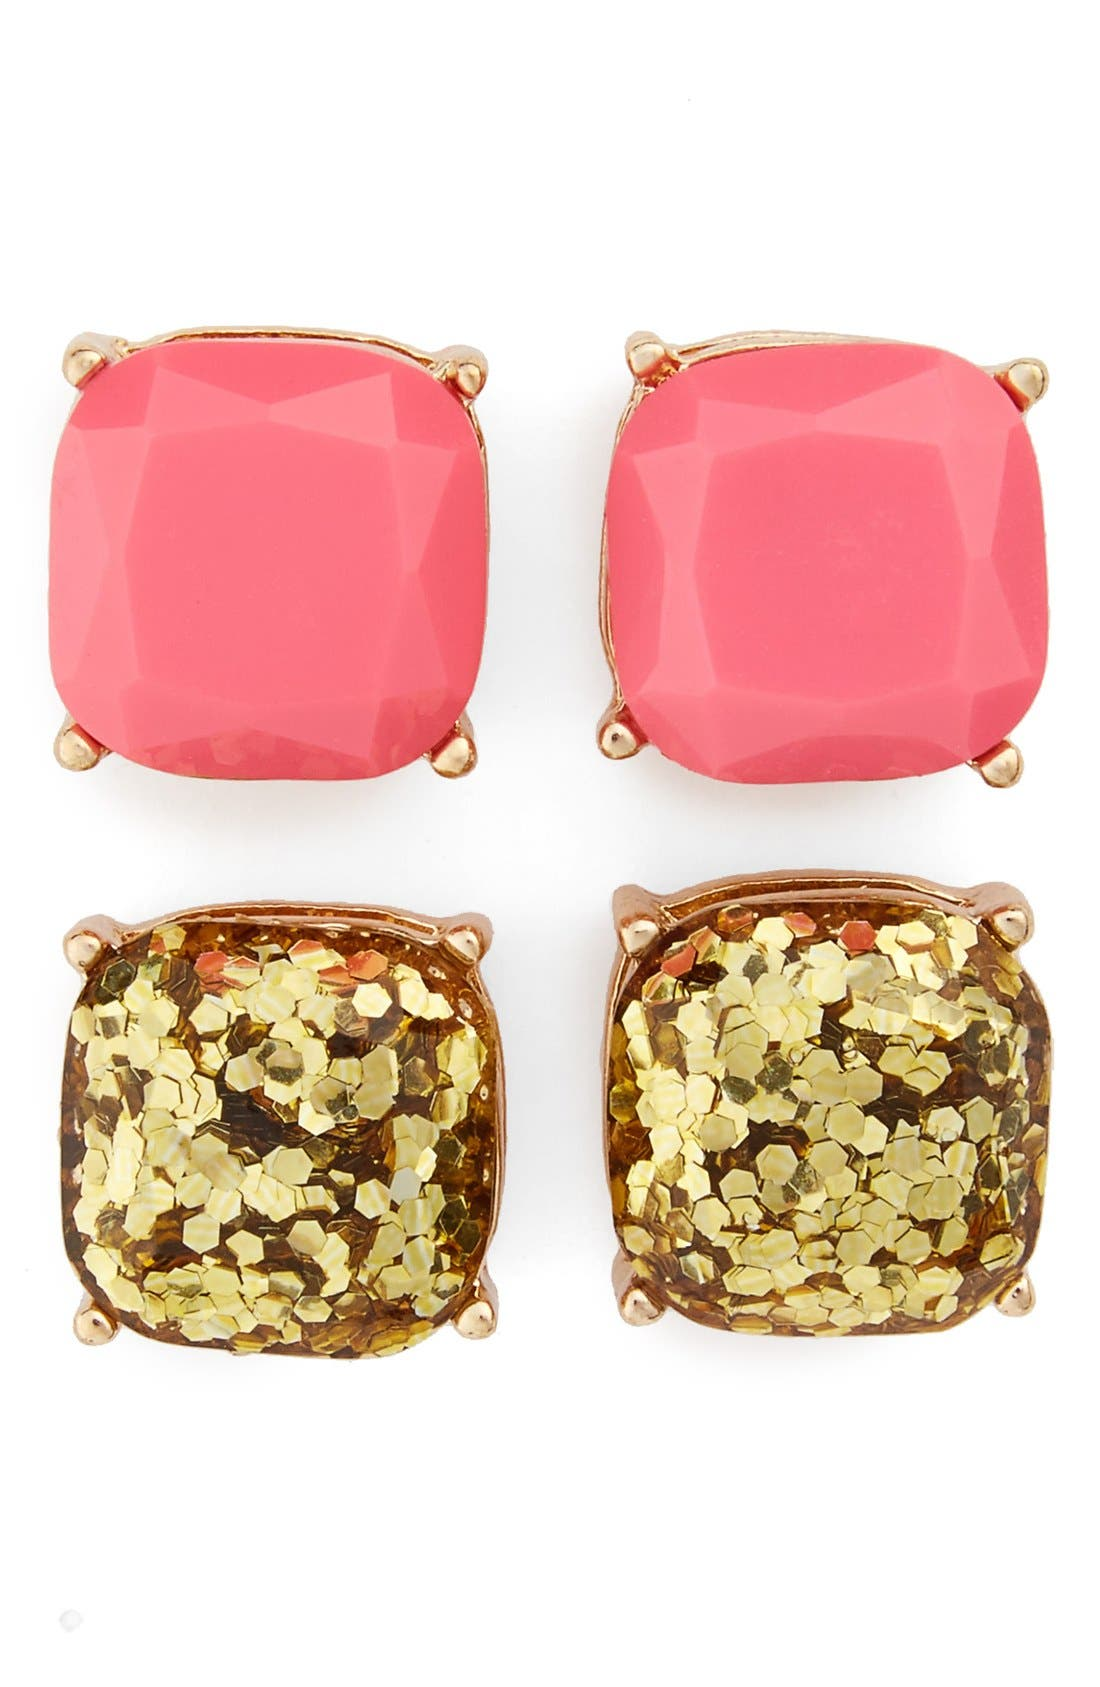 Alternate Image 1 Selected - BP. Square Stud Earrings (Set of 2)